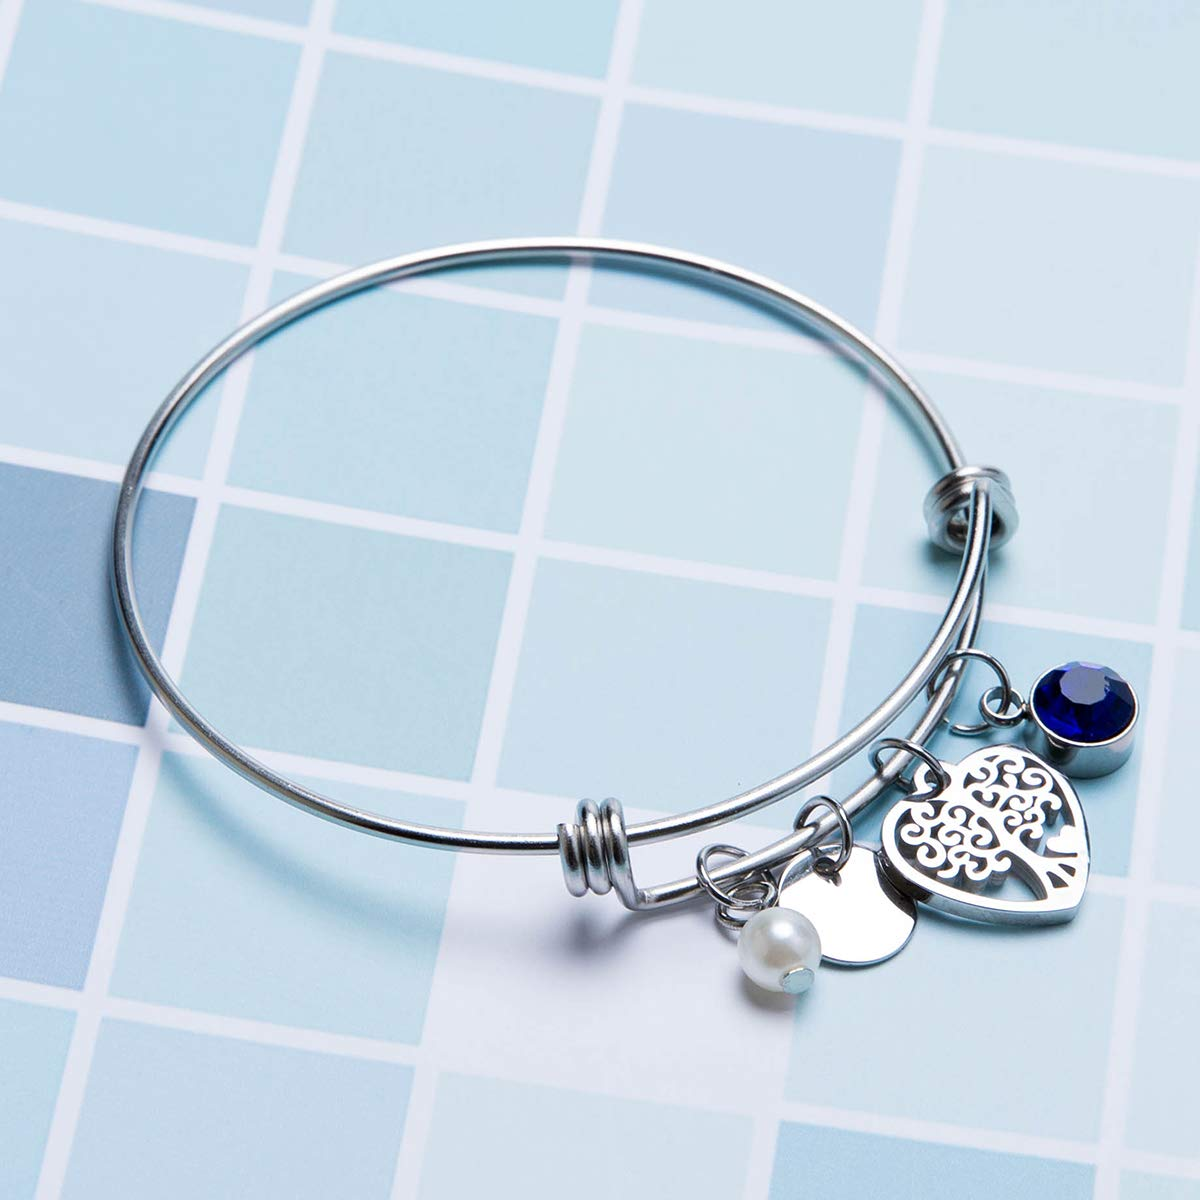 Choose Your Birthstone Fanery Sue Personalized Birthstone Bangle Cuff Expandable Charm Bracelet Custom Engraved Name Message